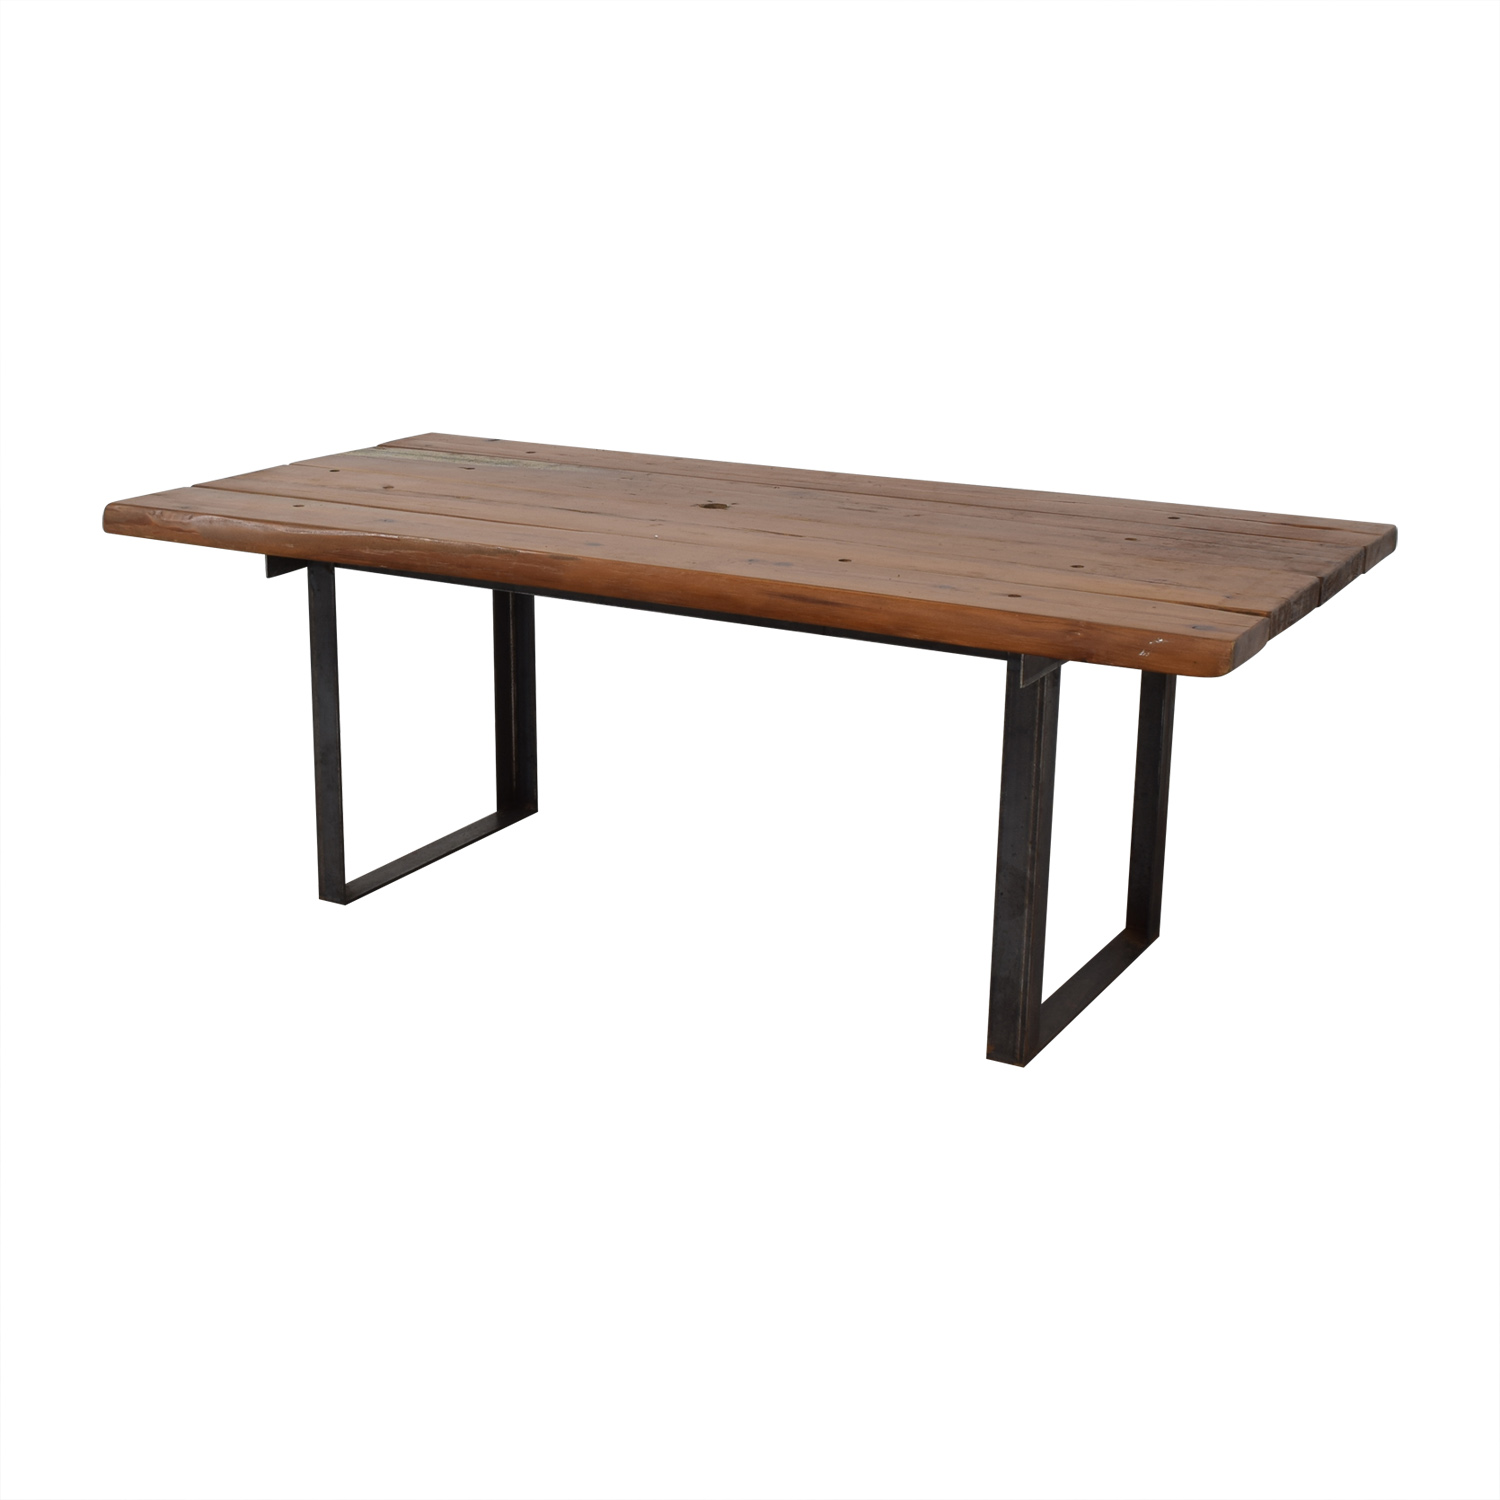 Pascal Benichou Industrial Rustic Wood Dining Table second hand